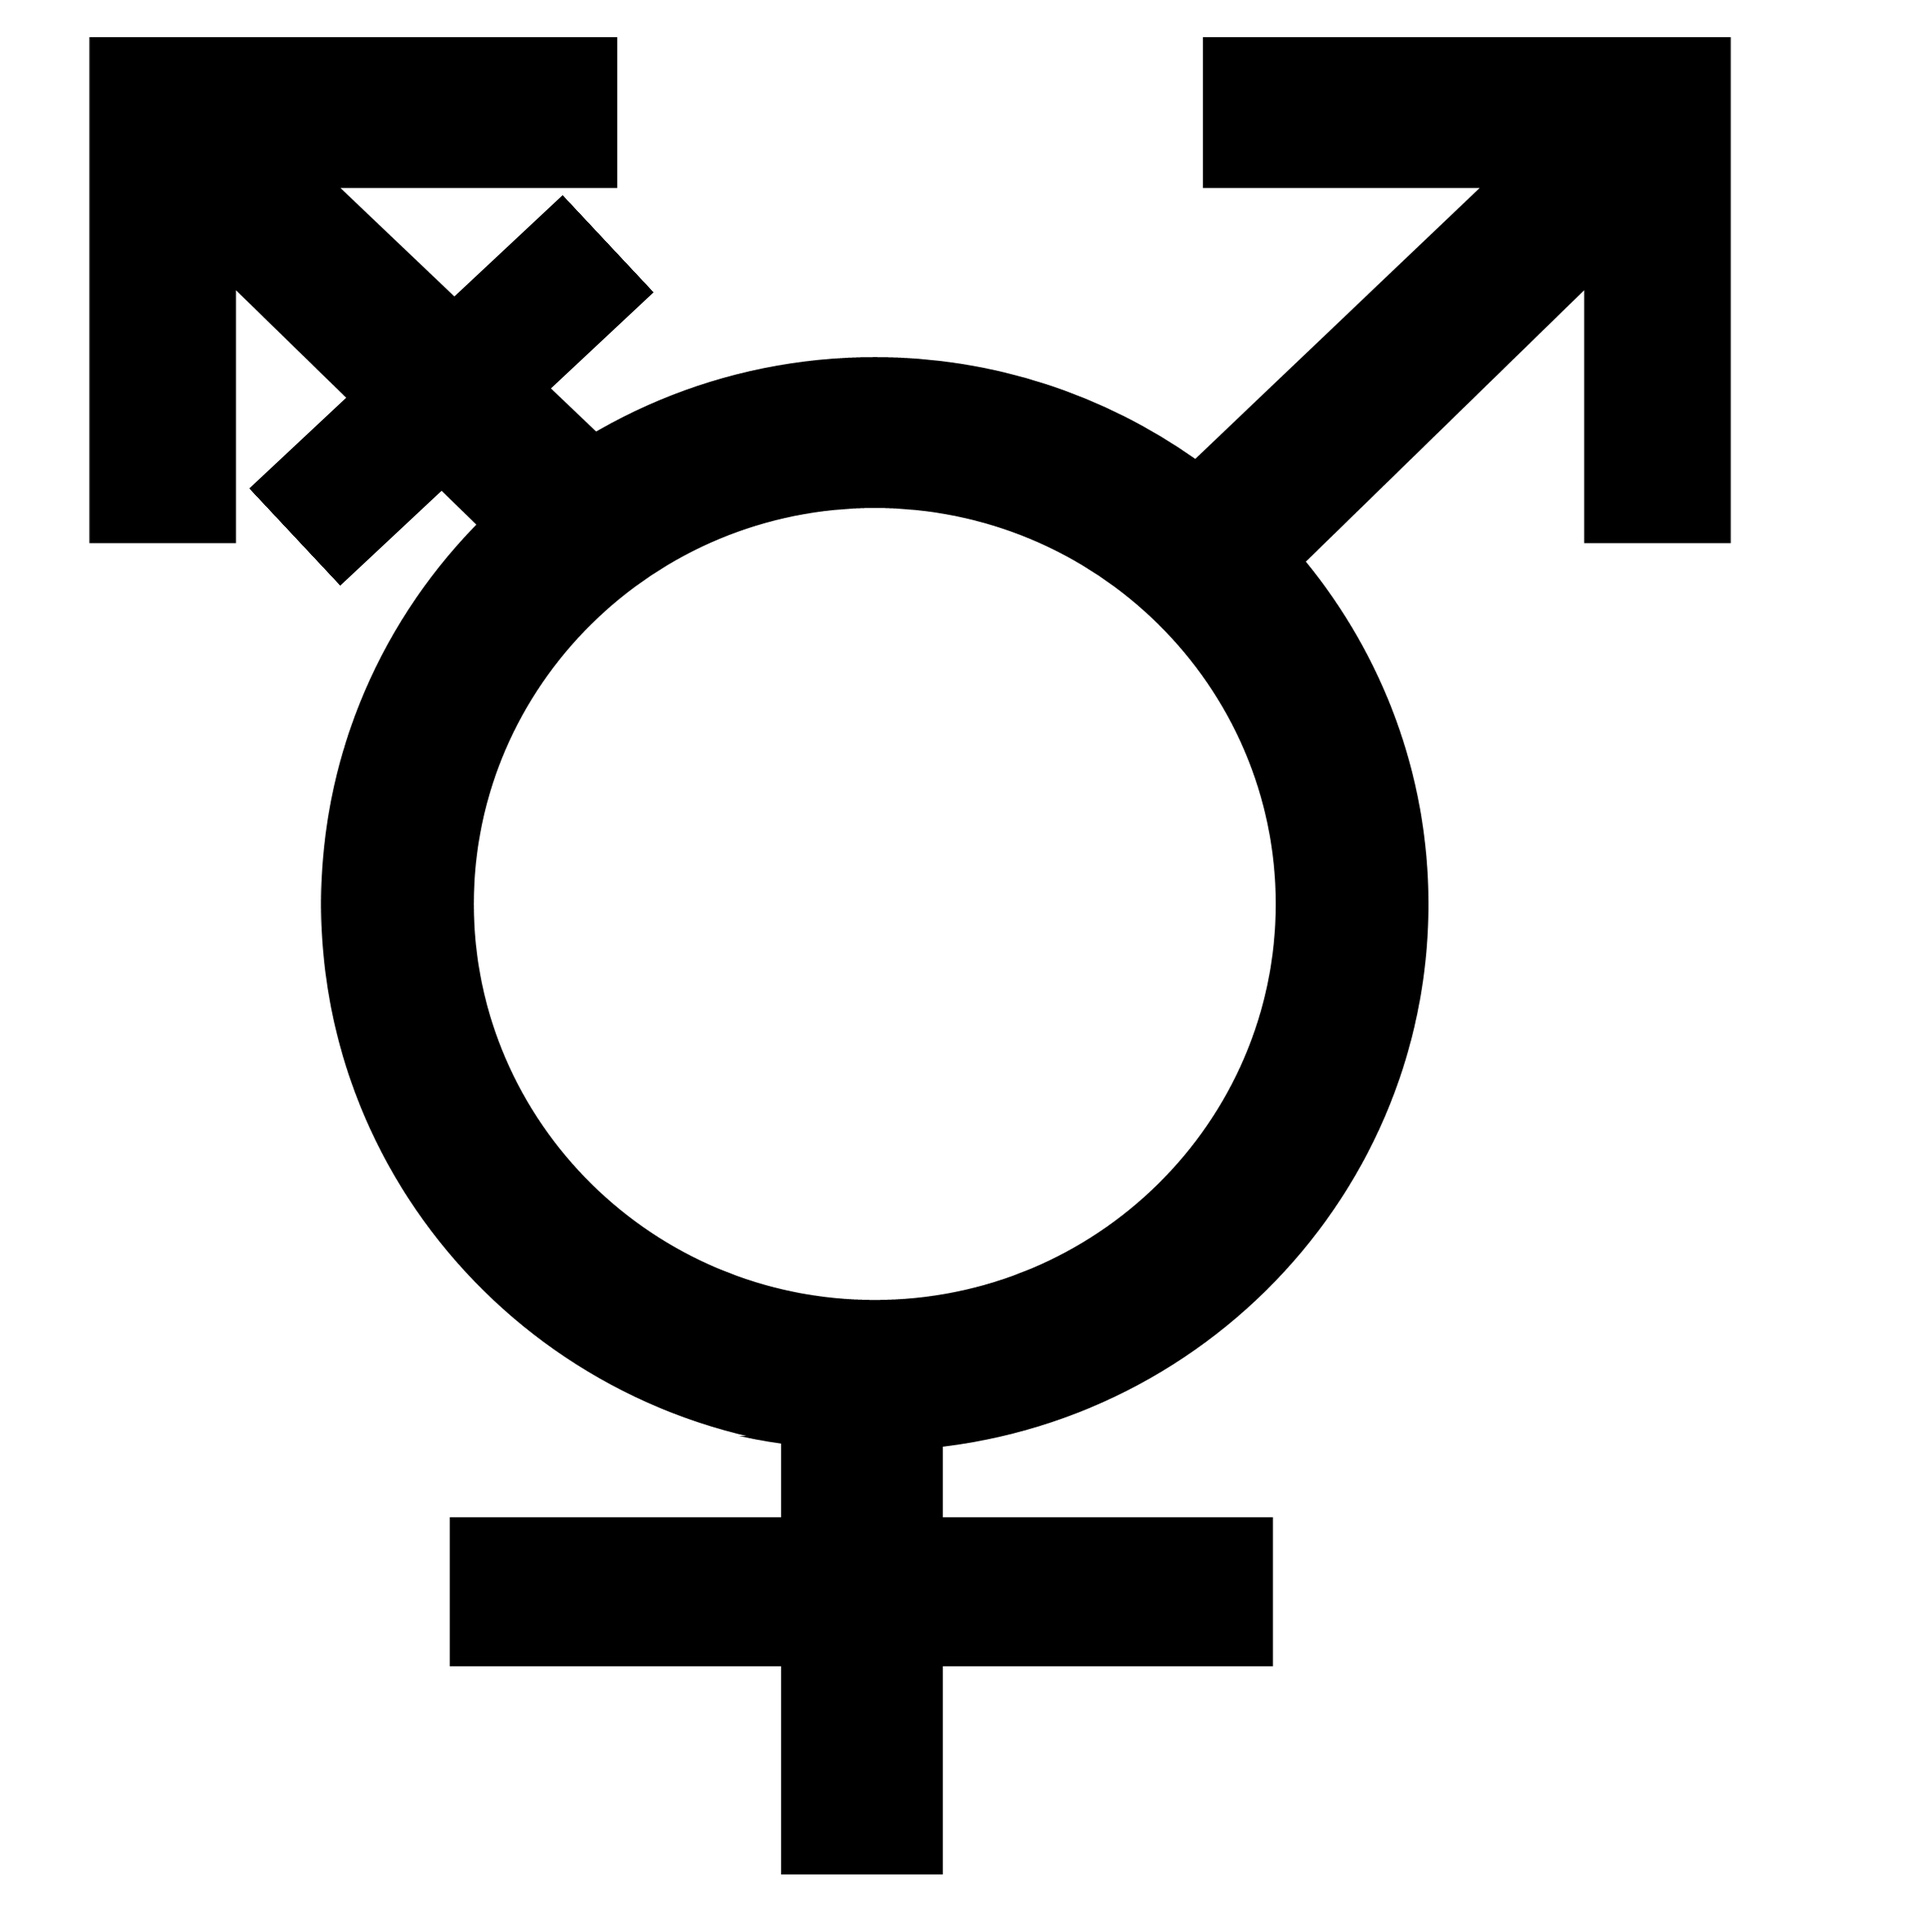 Three gender symbol